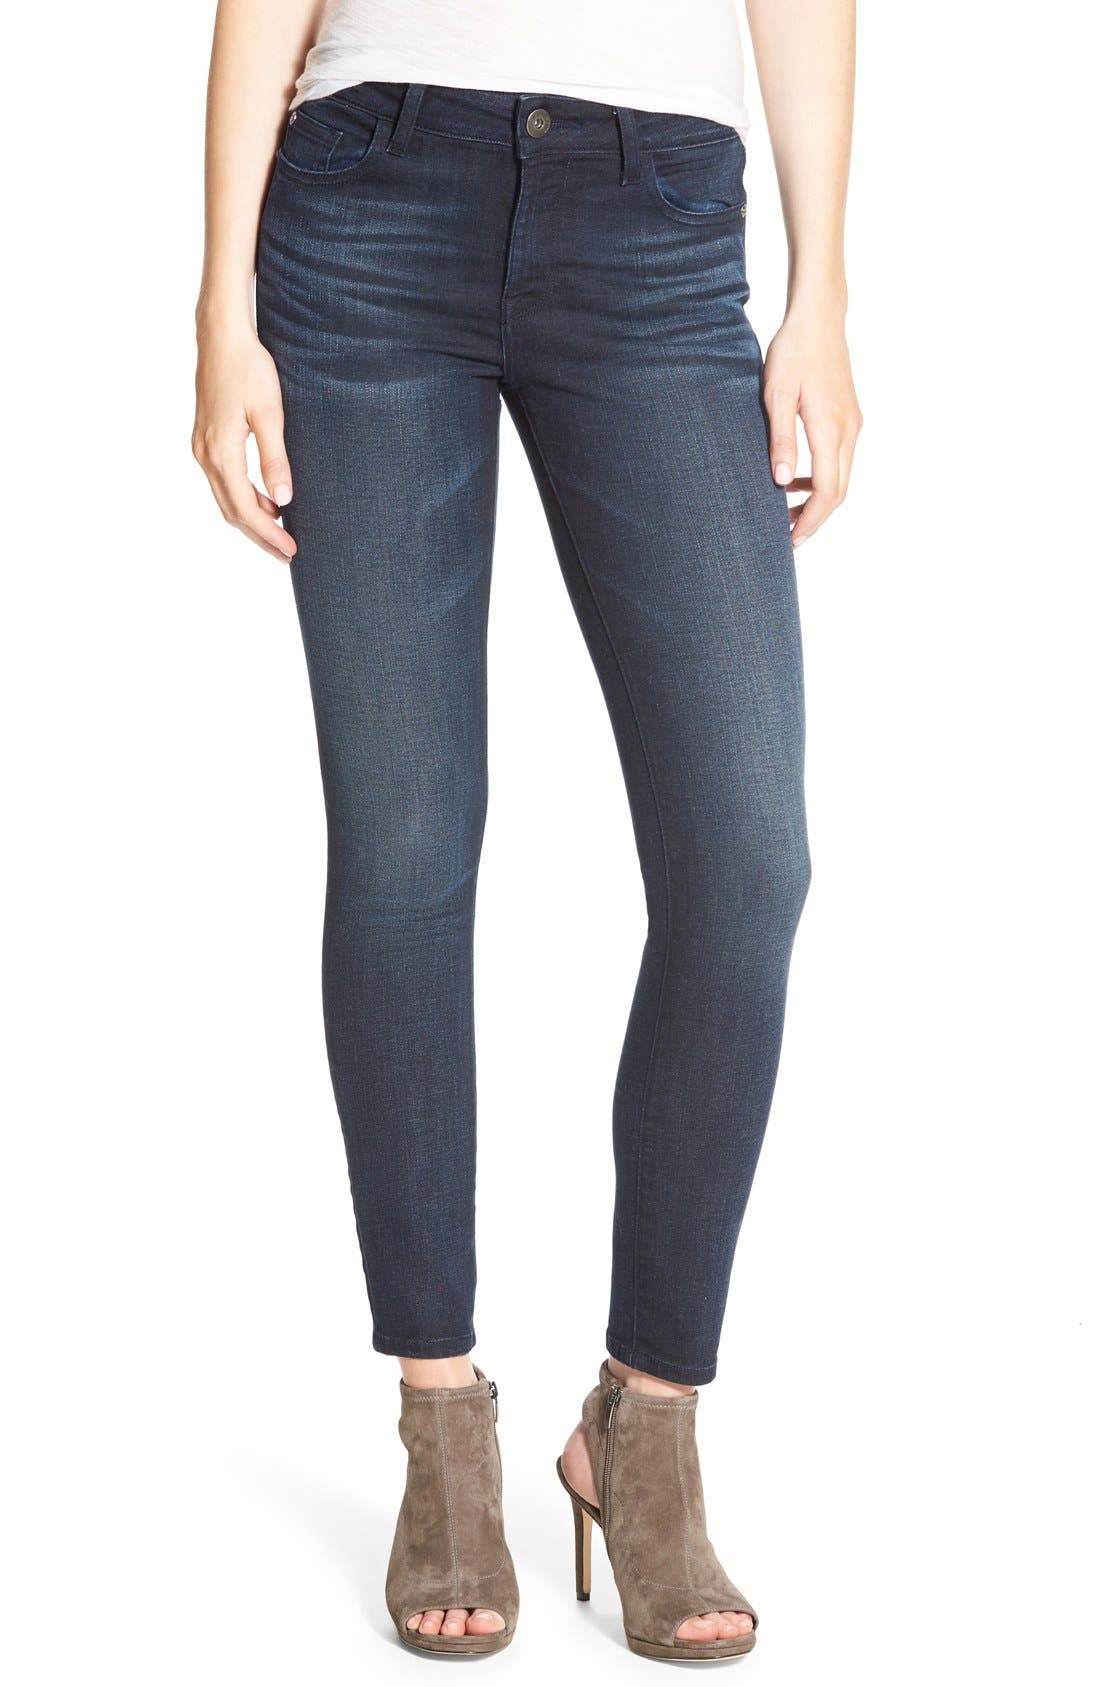 Main Image - DL1961 Margaux Instasculpt Ankle Skinny Jeans (Canyon)